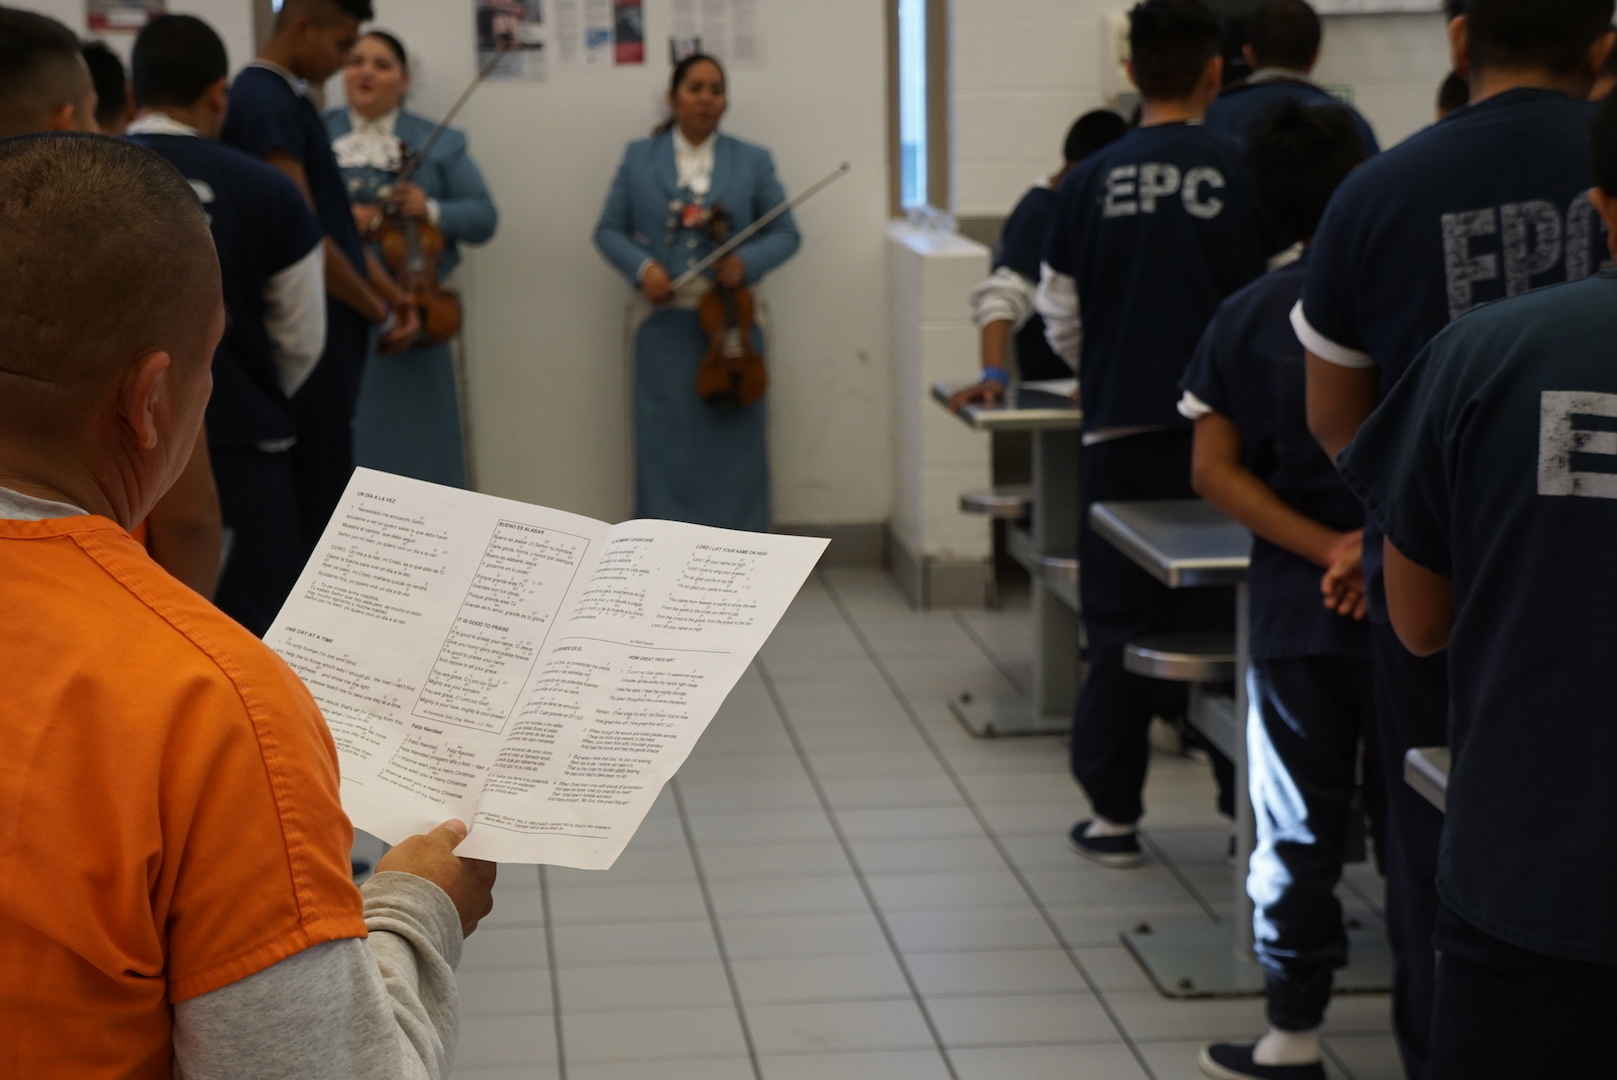 Immigration Detention Ministry - Even Now, God's Truth and Love image